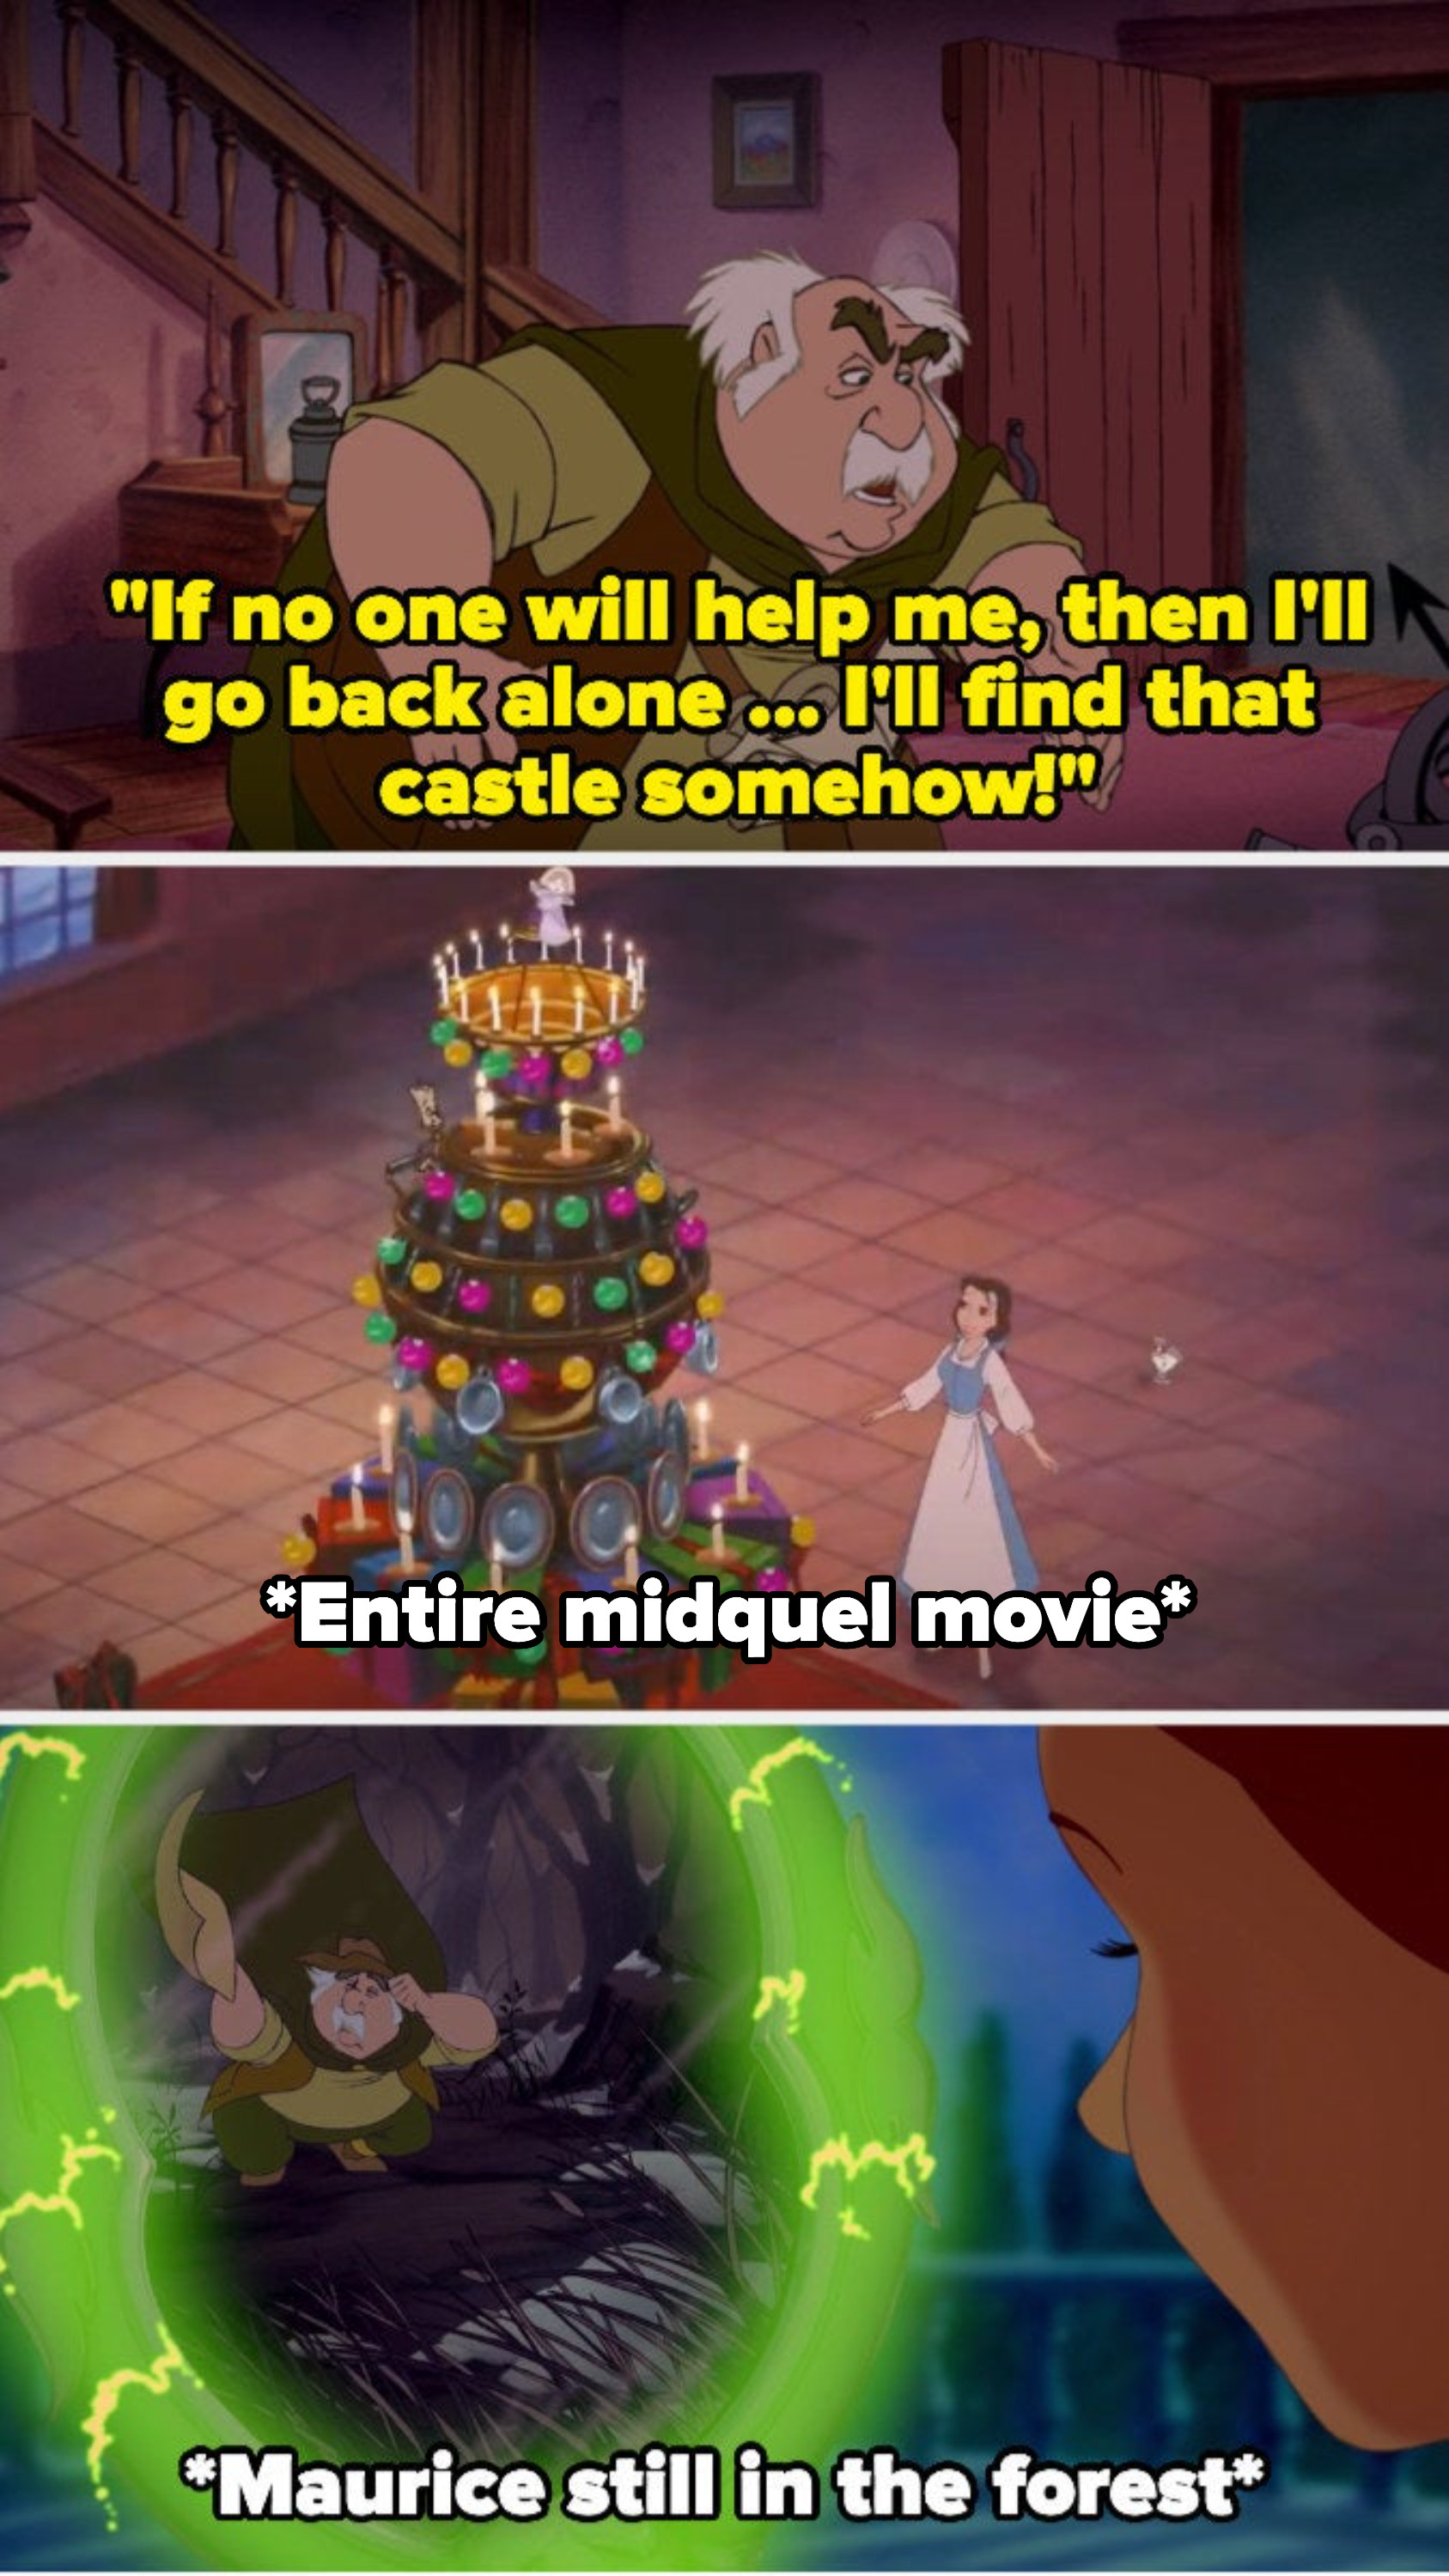 Maurice says he'll go back alone and find the castle, and then we see Belle in the Christmas movie, and later Belle sees Maurice still in the forest